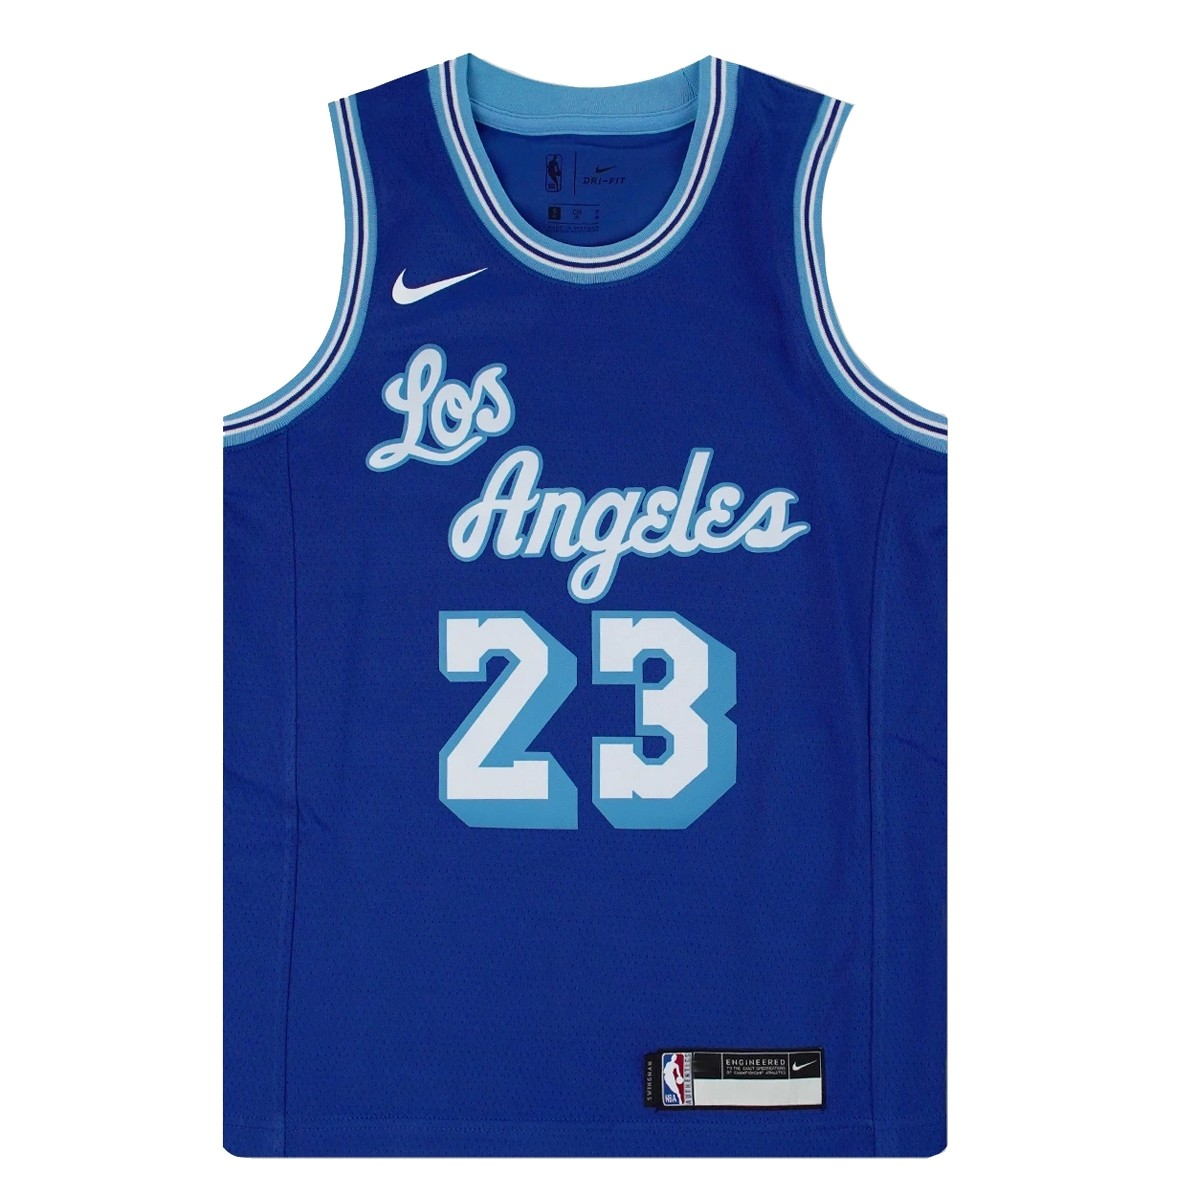 Nike Jr NBA Los Angeles Lakers Swingman Jersey LeBron James 'Classic Edition'